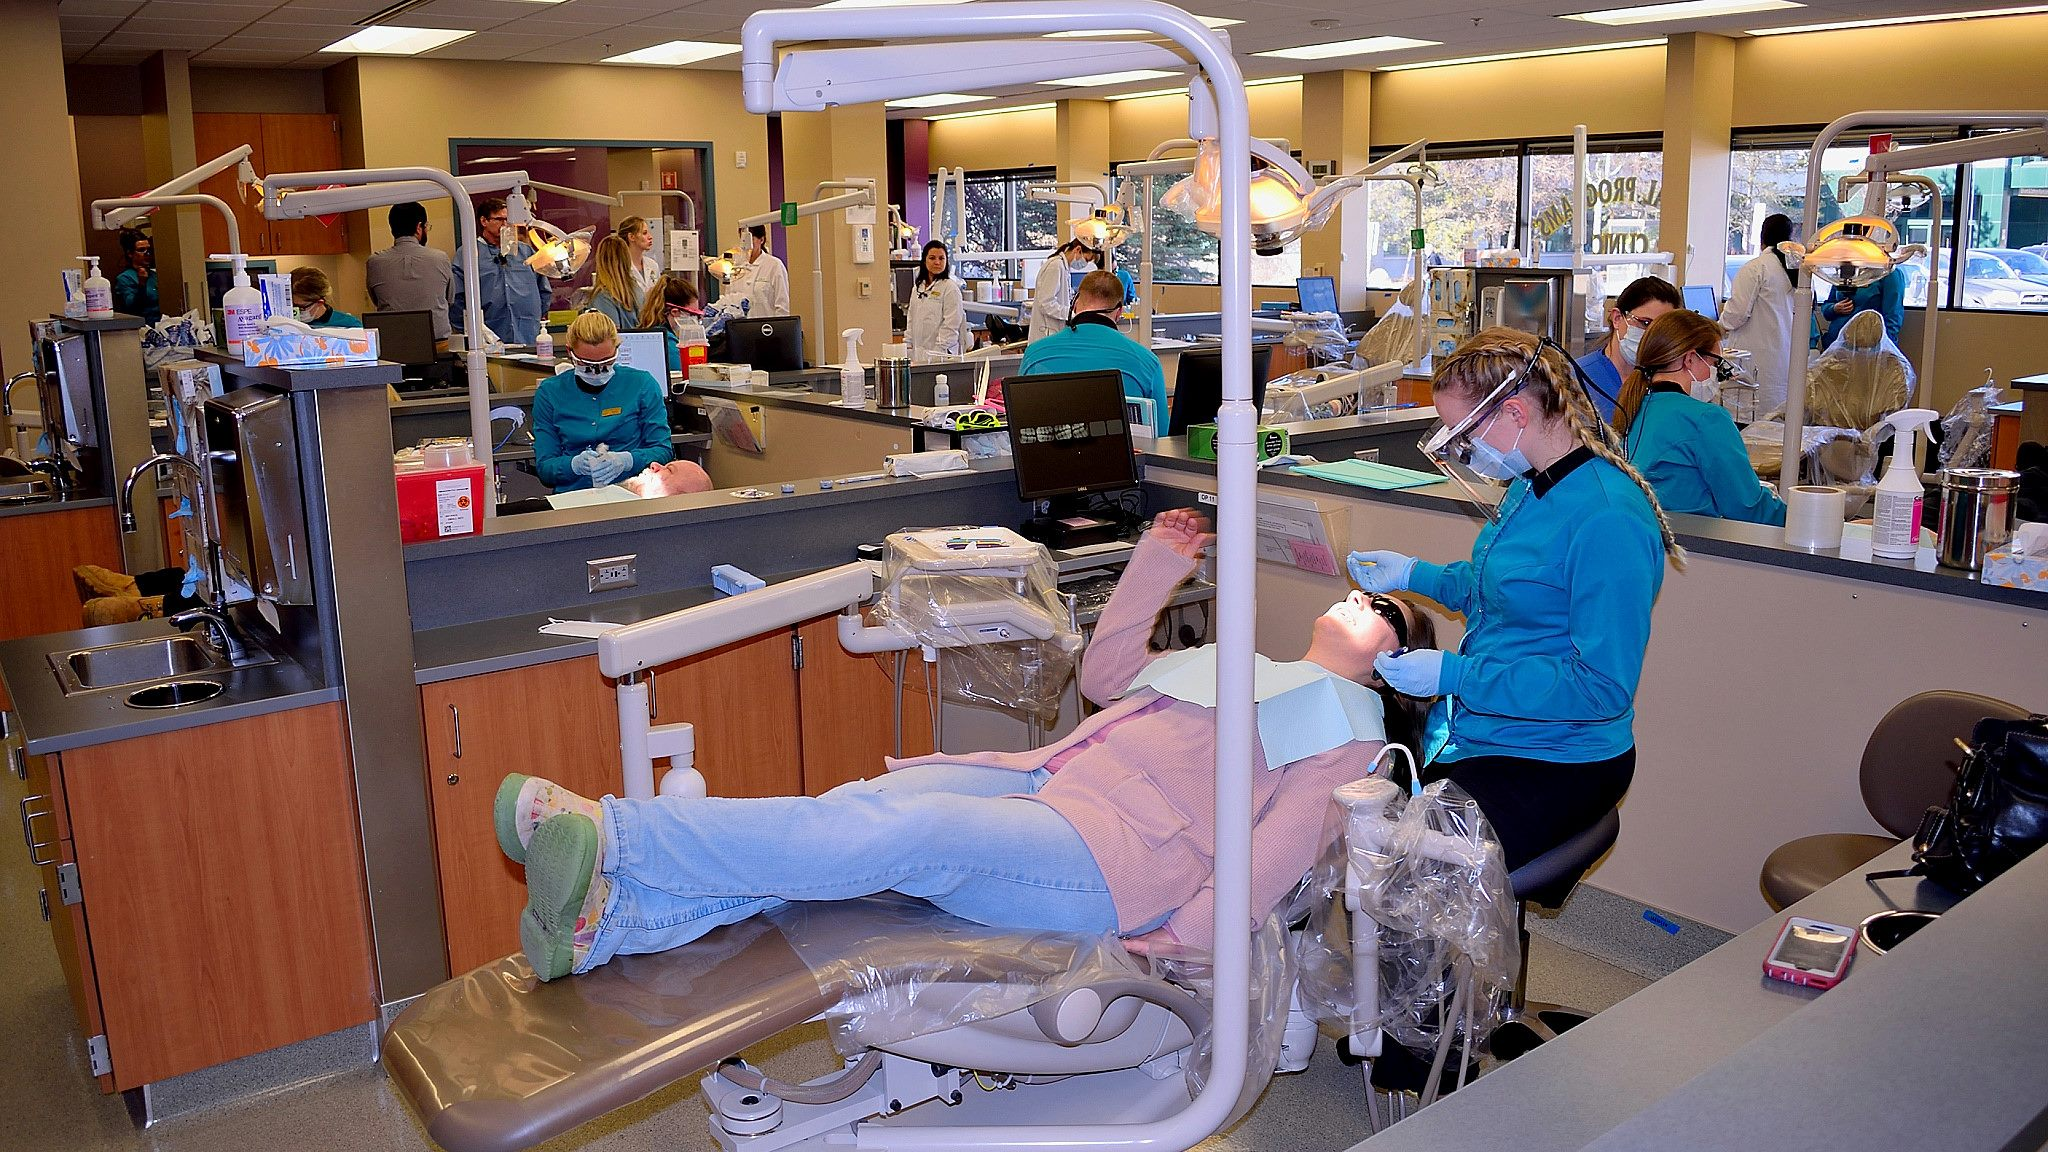 Dental students working on a patient